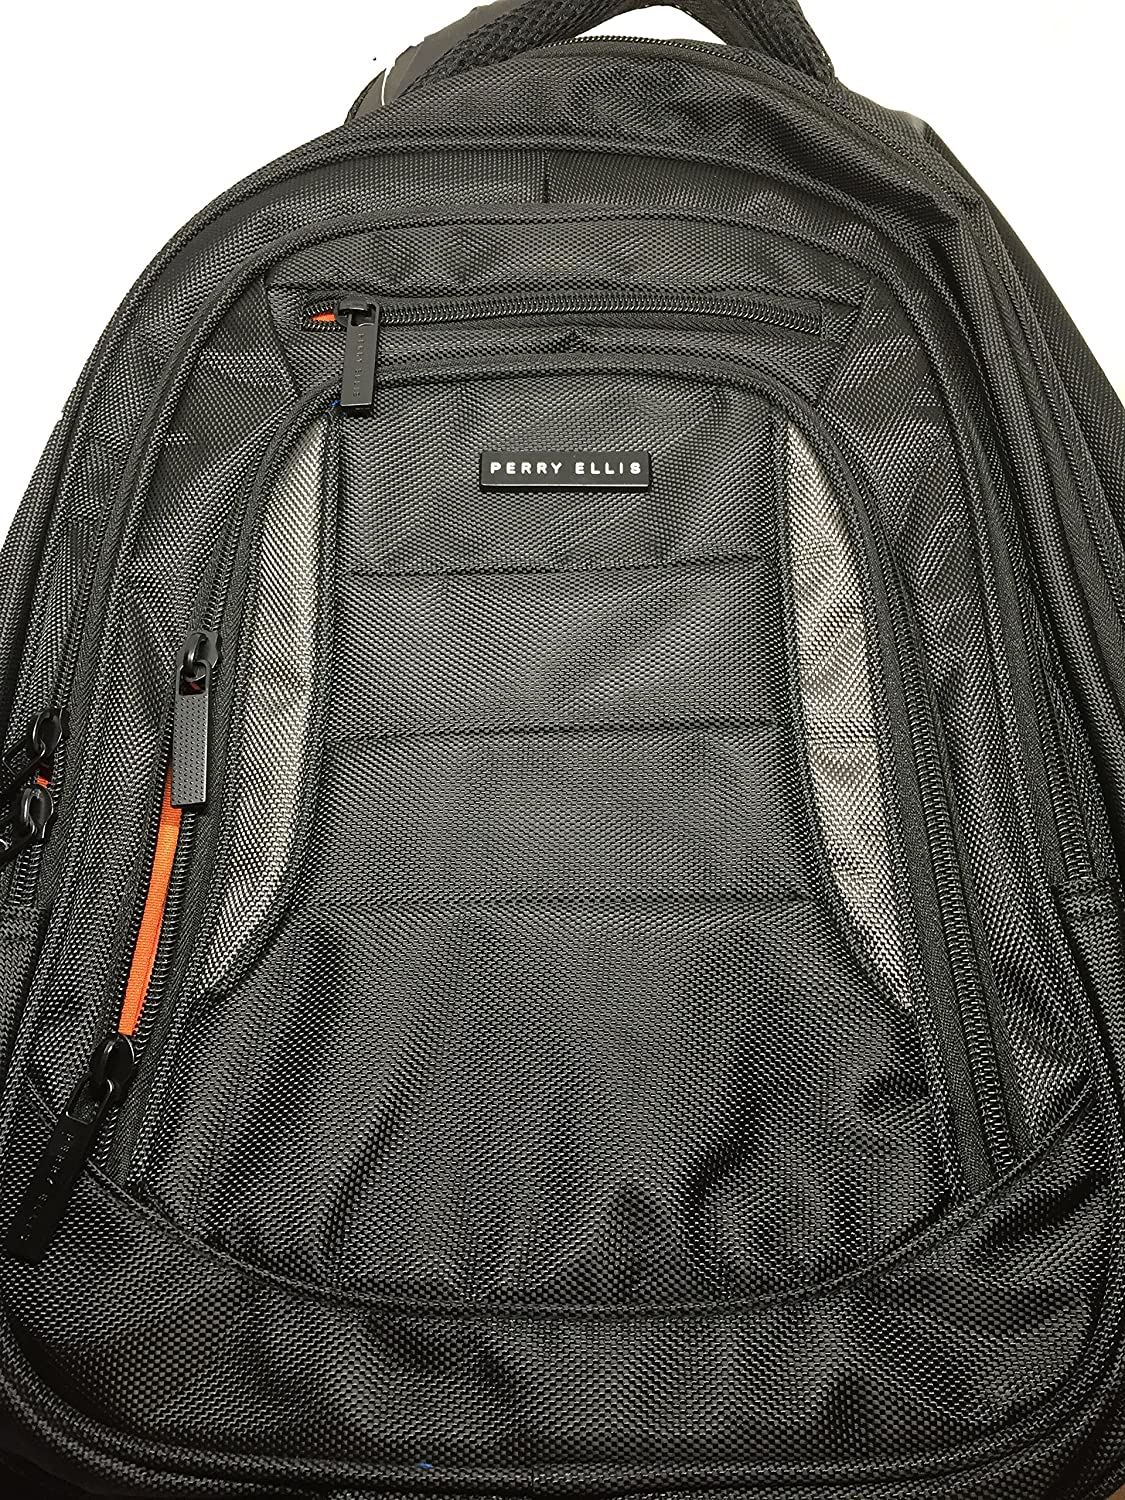 b491e015f4ac Amazon.com: Perry Ellis Laptop Backpack P11: Computers & Accessories